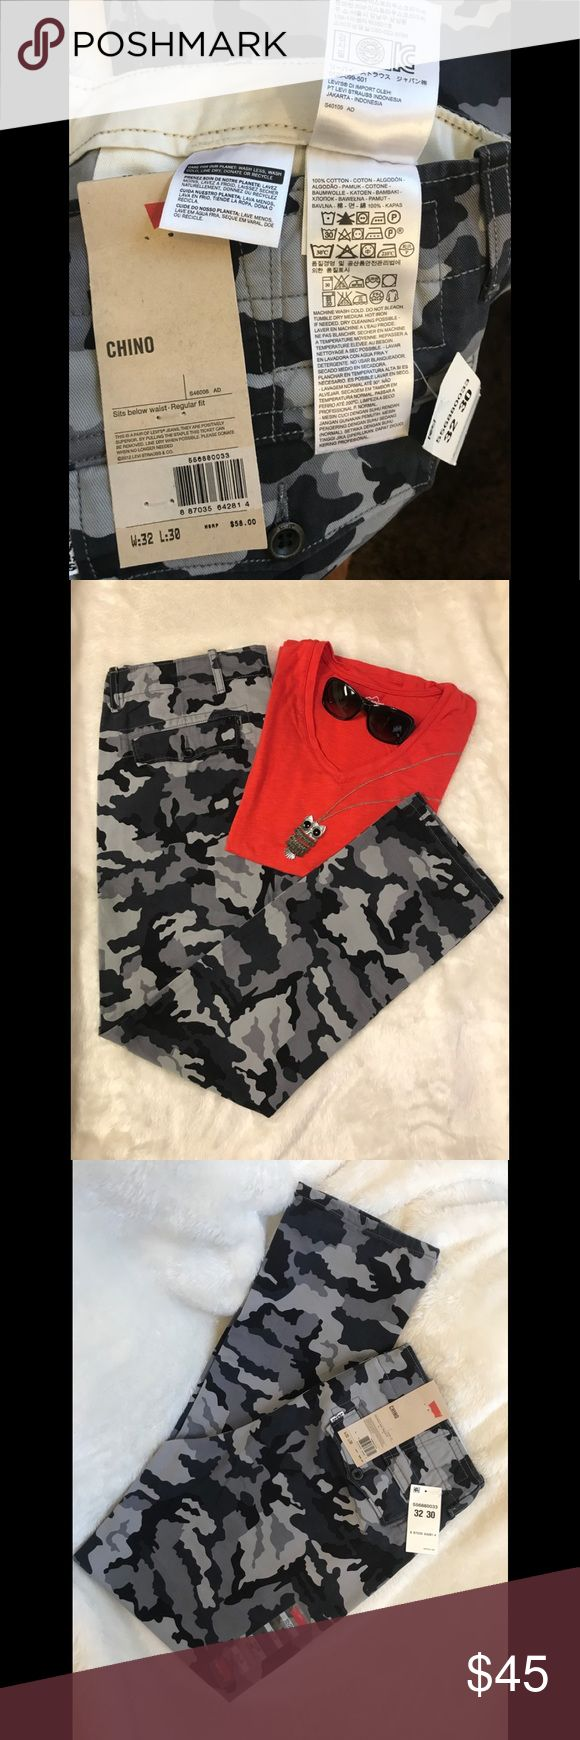 Levi's white tab camouflage chino pants size 32 Dark gray and black color. W:32 L:30. Regular fit. Sits below the waist. 100% cotton. Levi's Pants Straight Leg